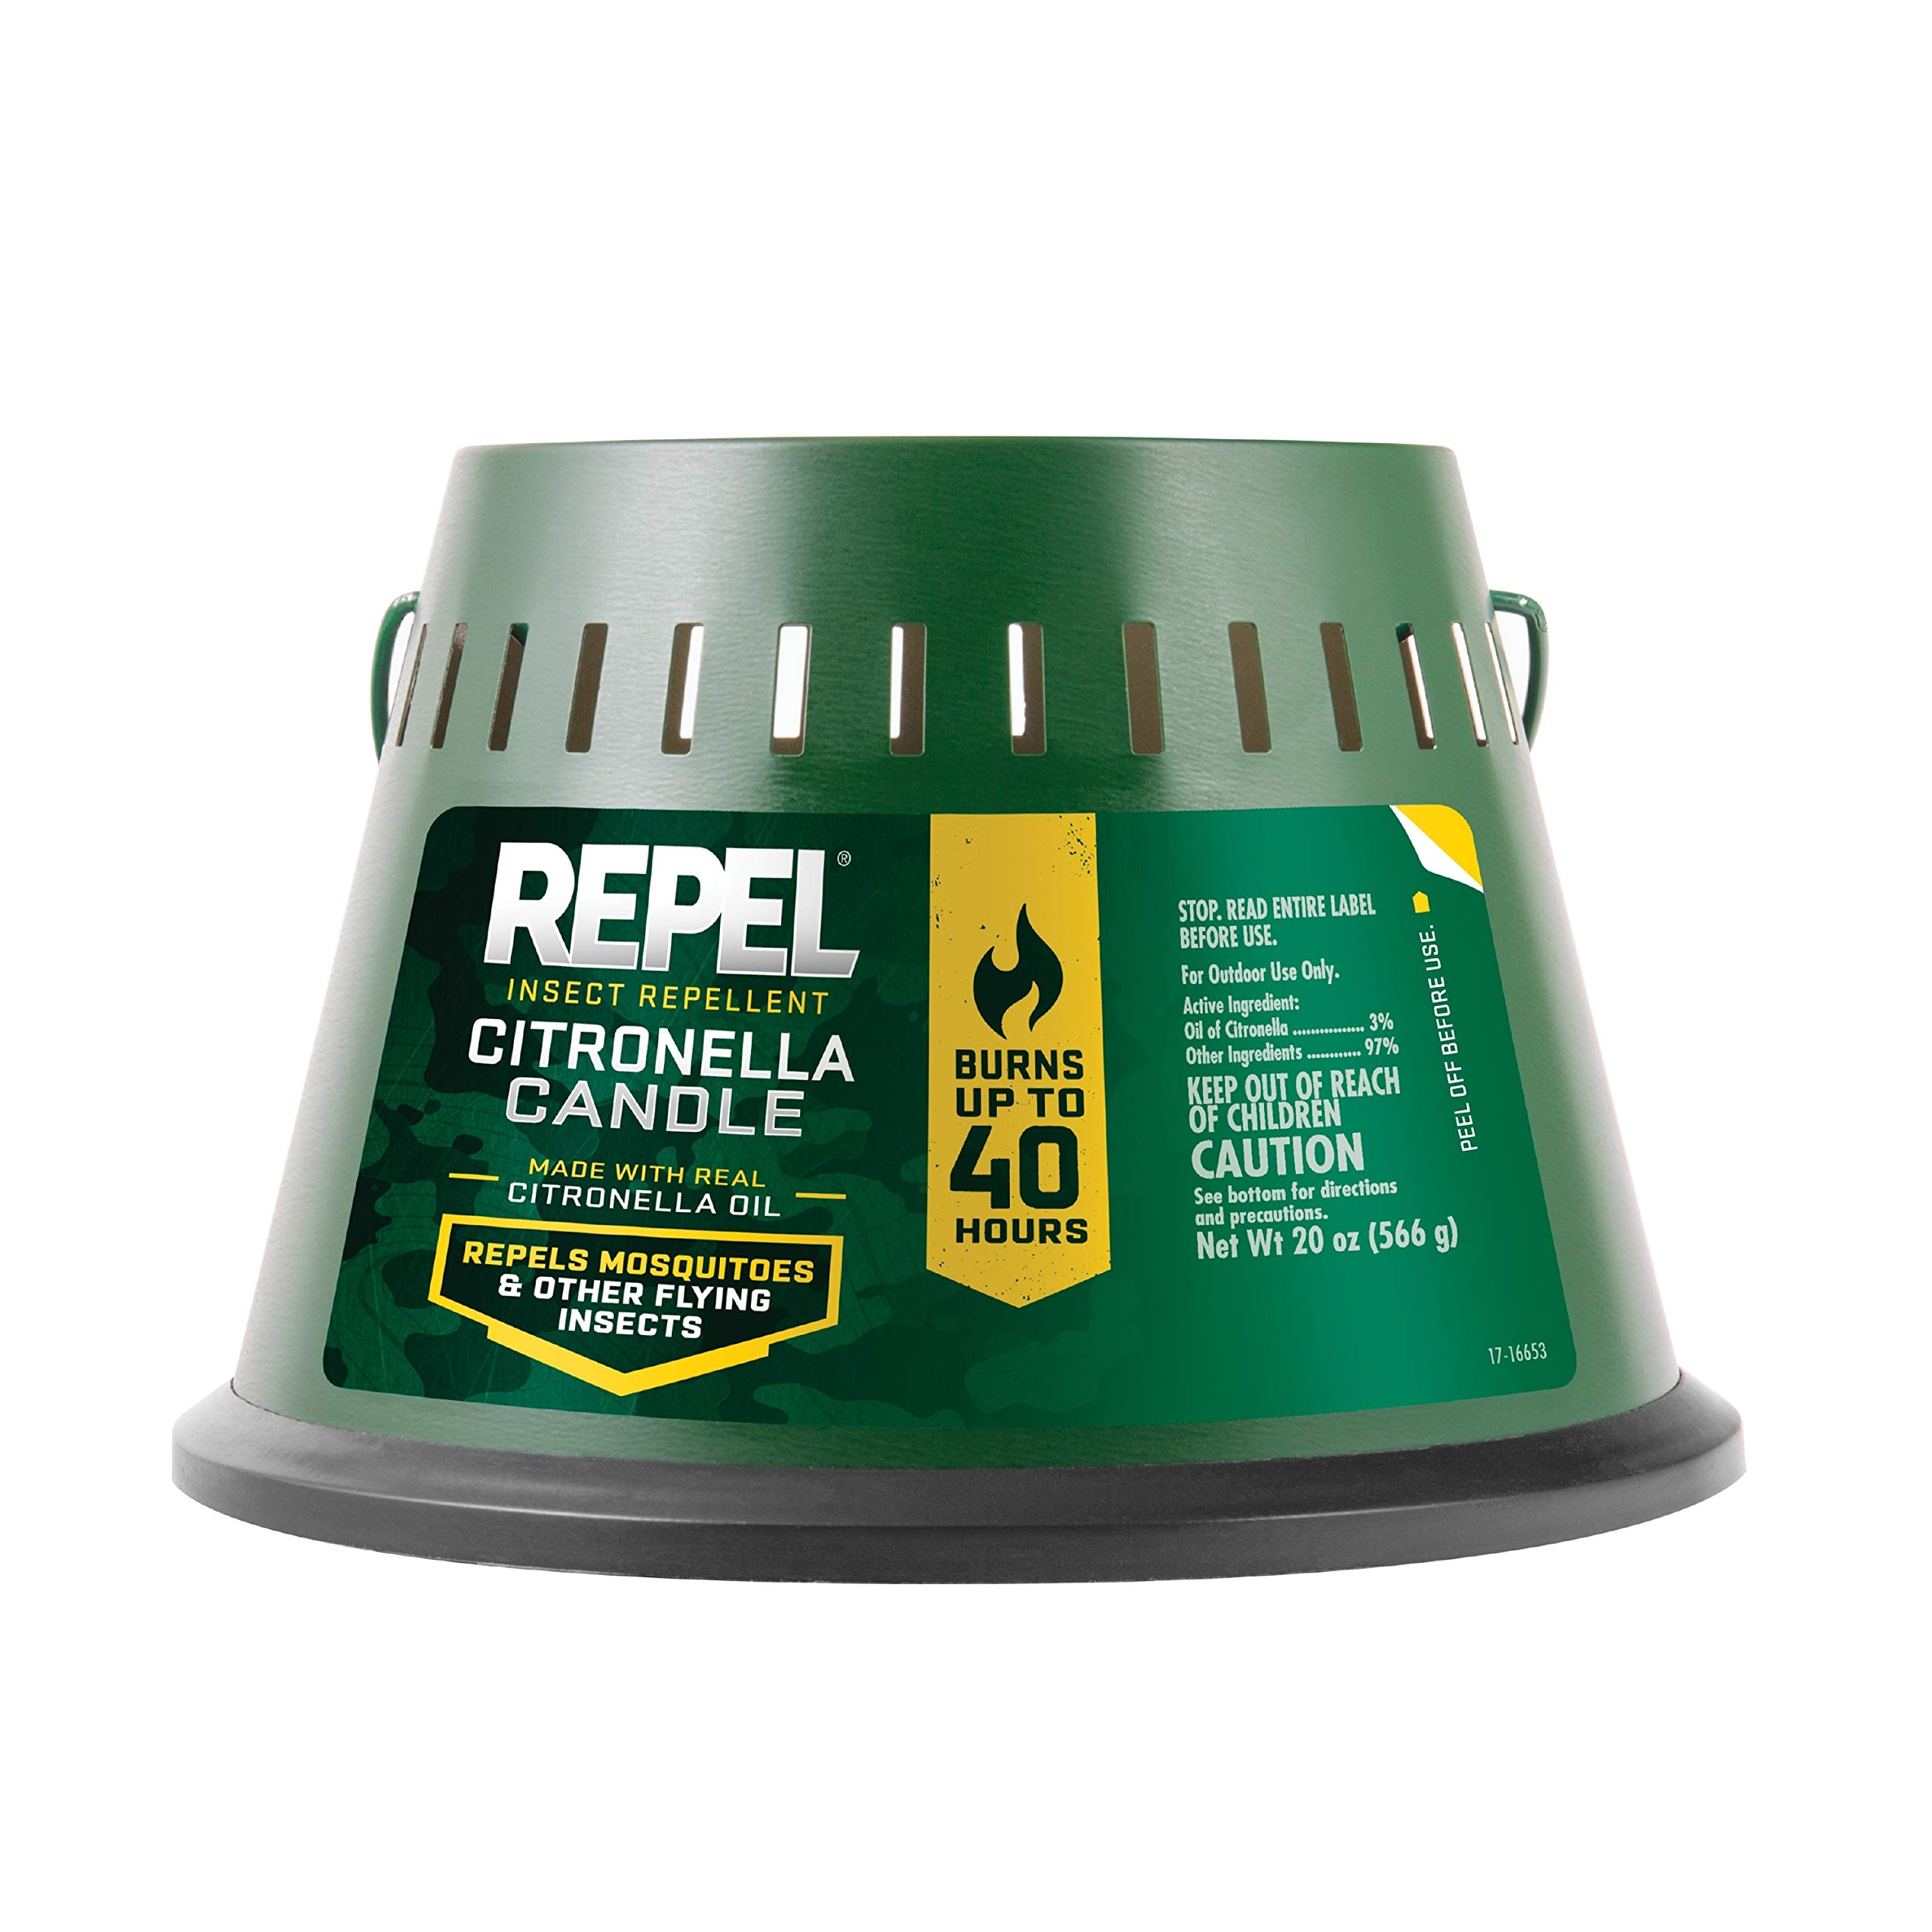 Repel Insect Repellent Citronella Candle, Triple Wick, 20-Ounce